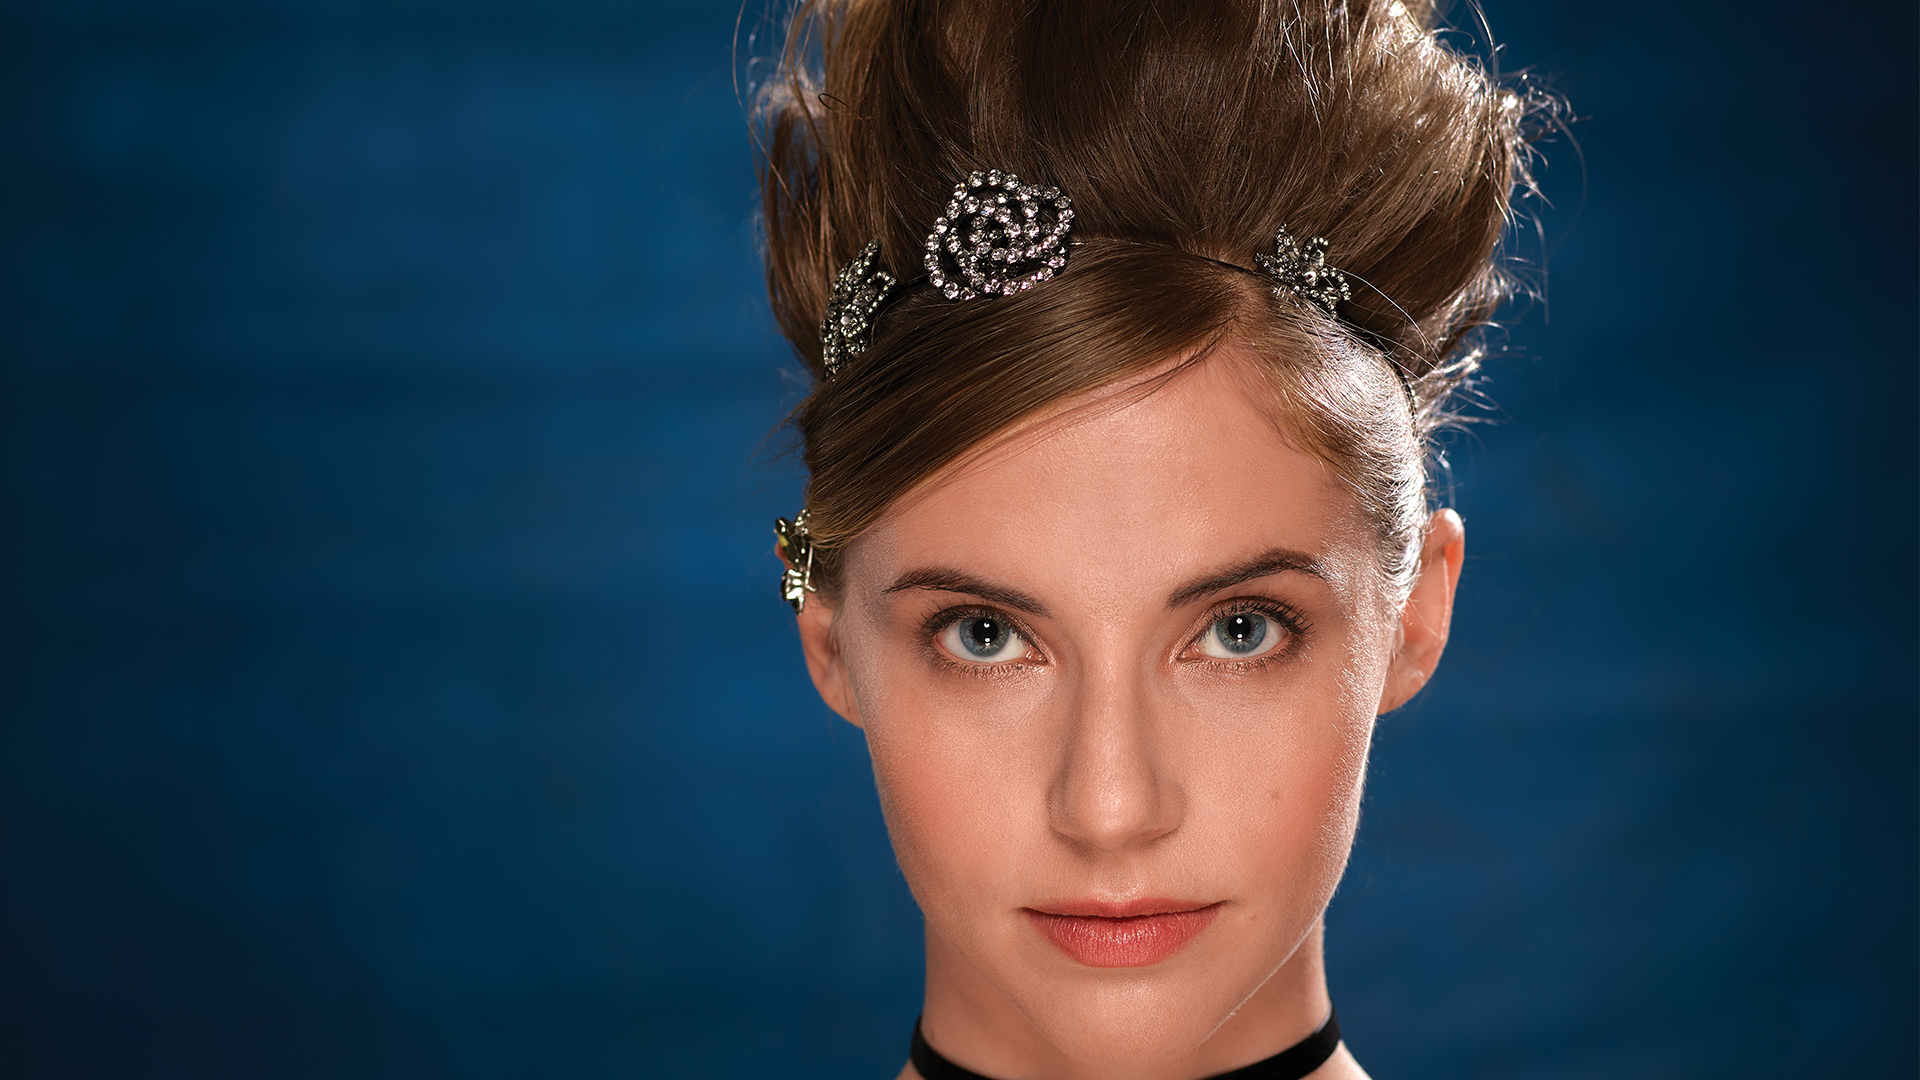 Wallis Currie-Wood adds festive sparkle and head bling to her hairstyle